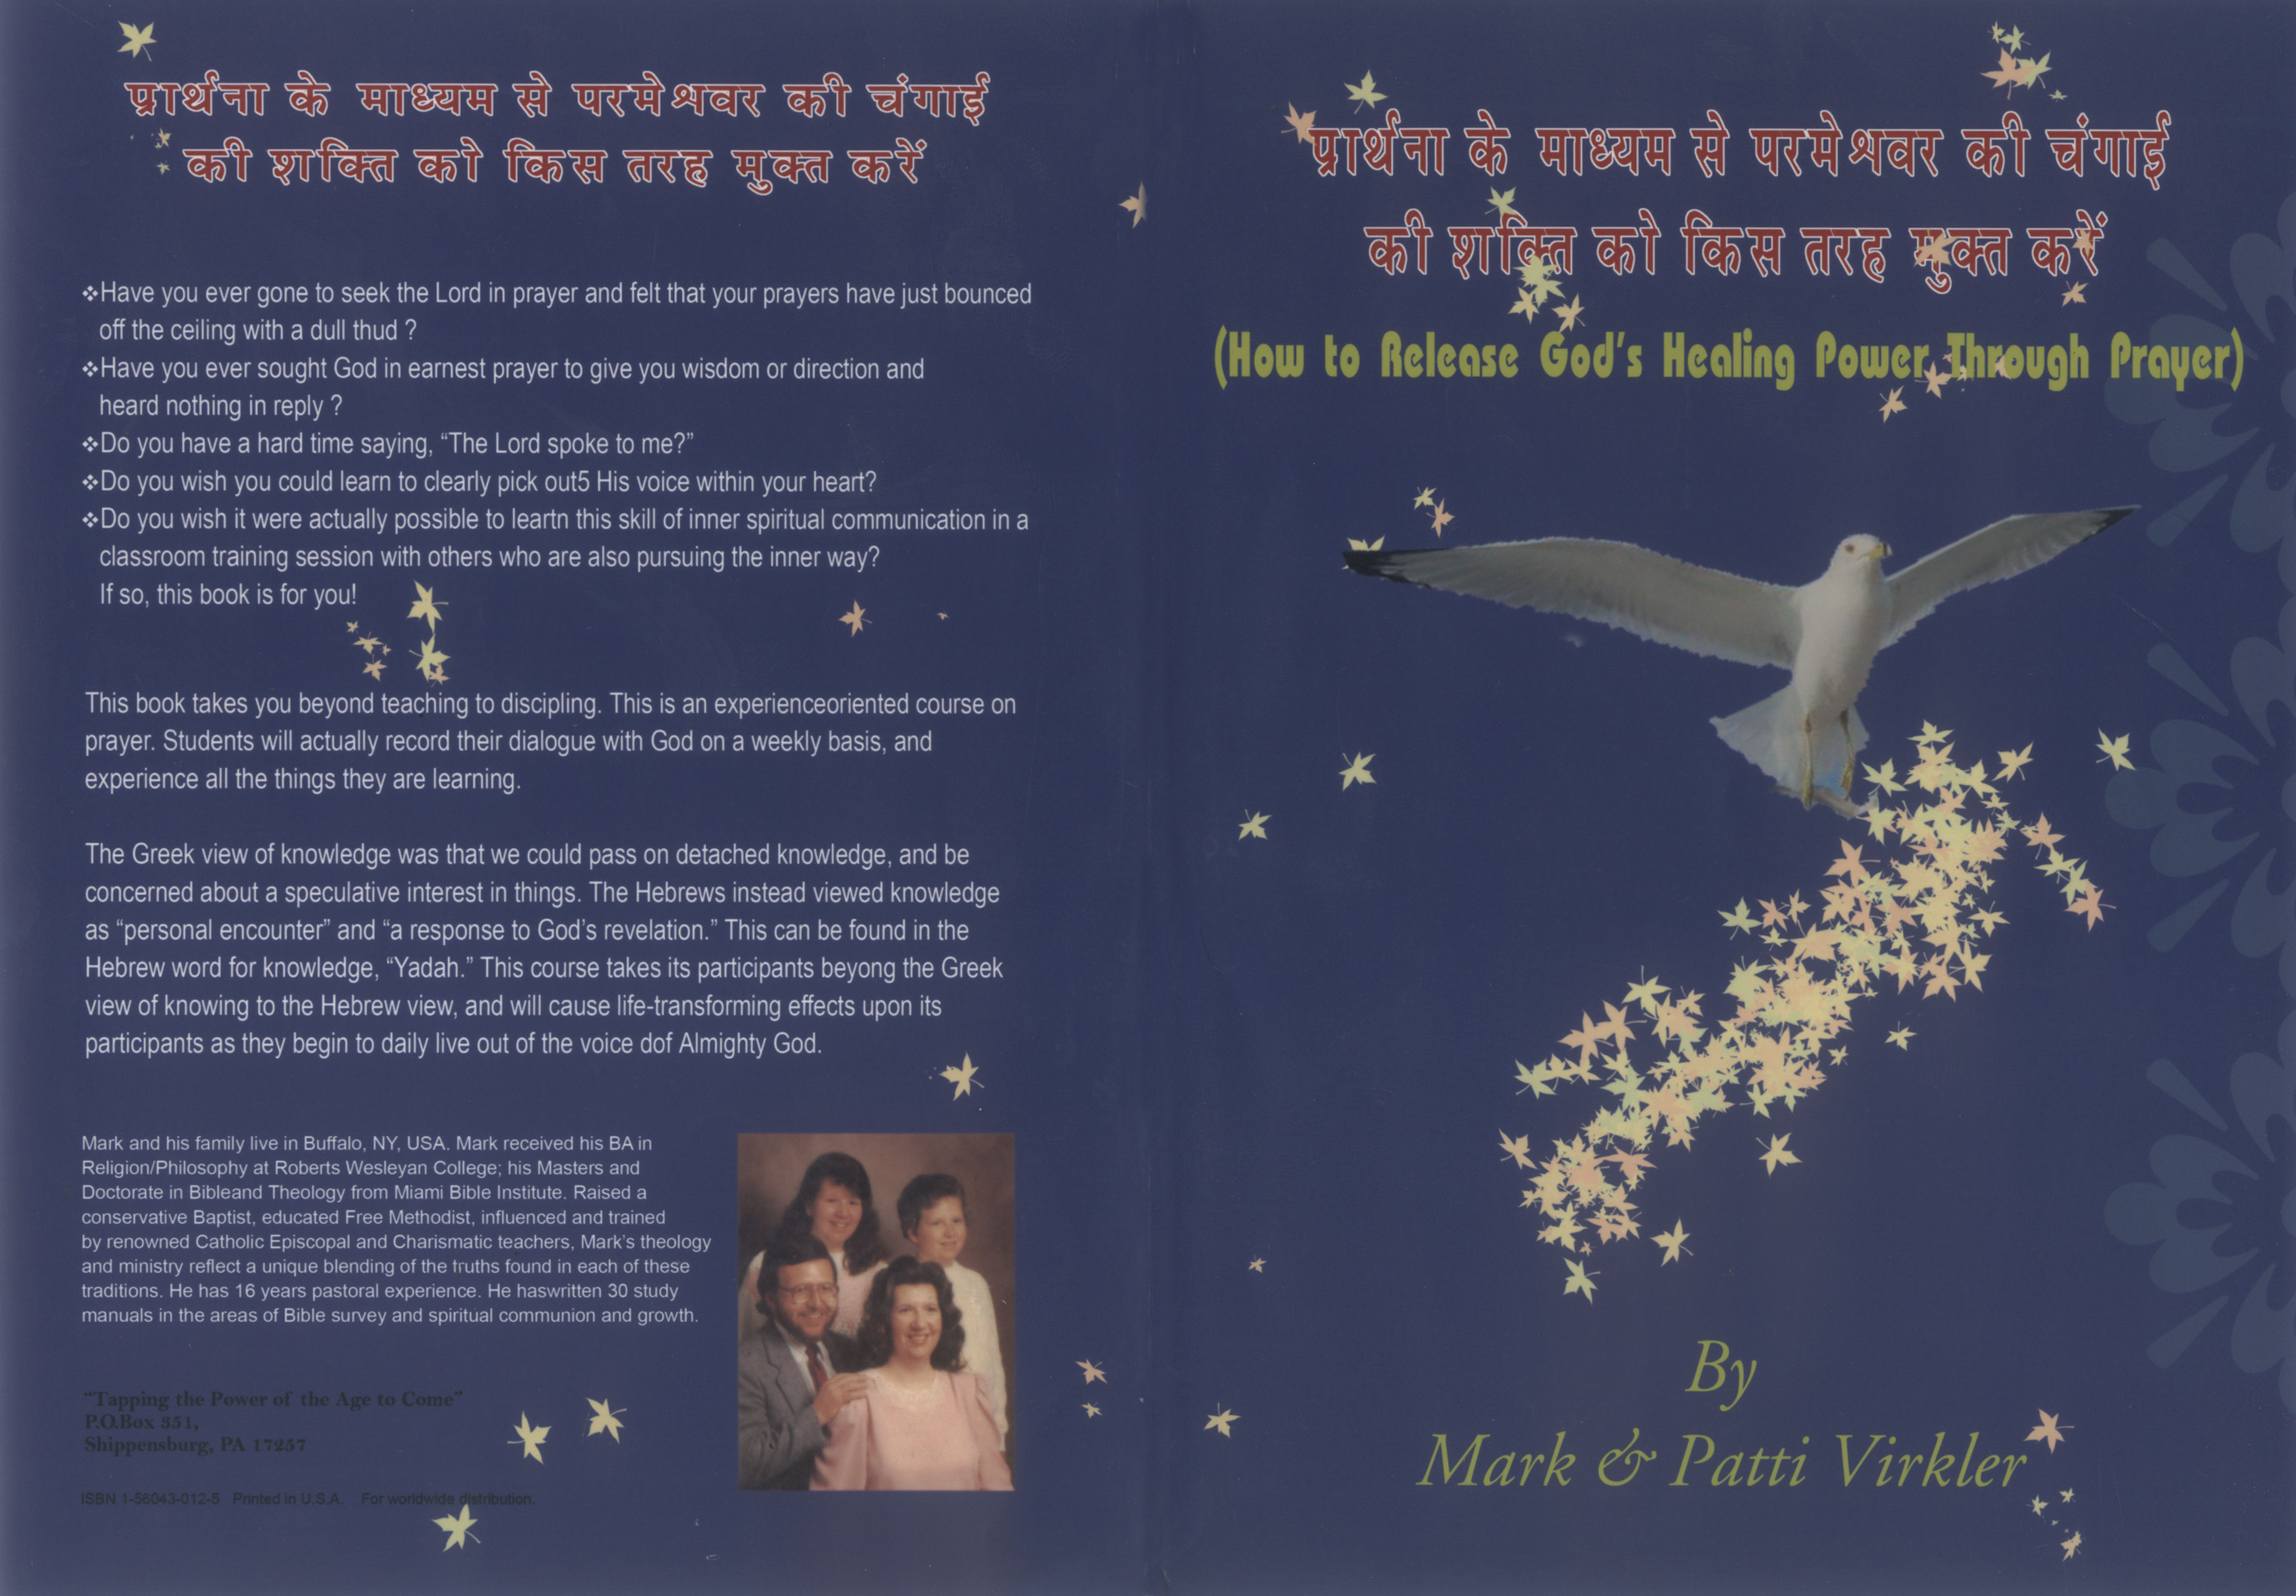 Free Christian Books, Video and MP3 Audio in Hindi